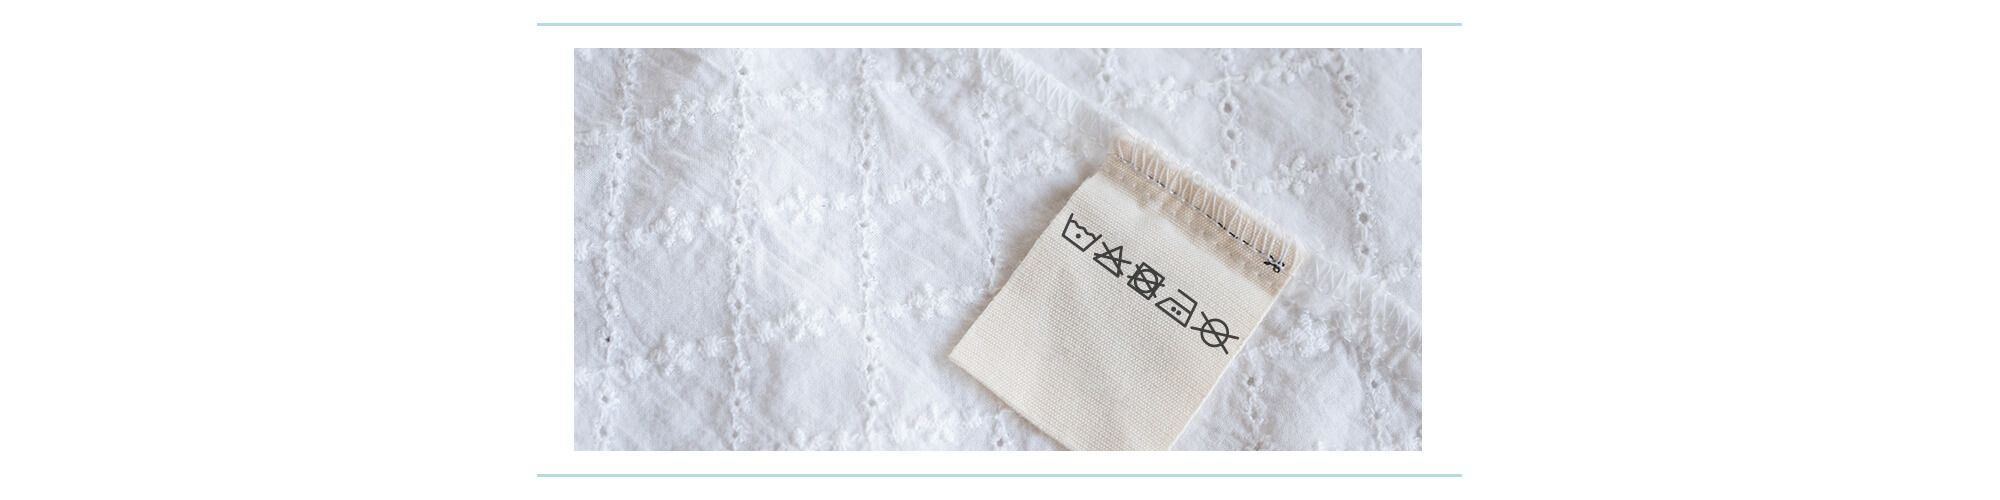 A laundry care tag with symbols on it sewn into a white eyelet piece of fabric